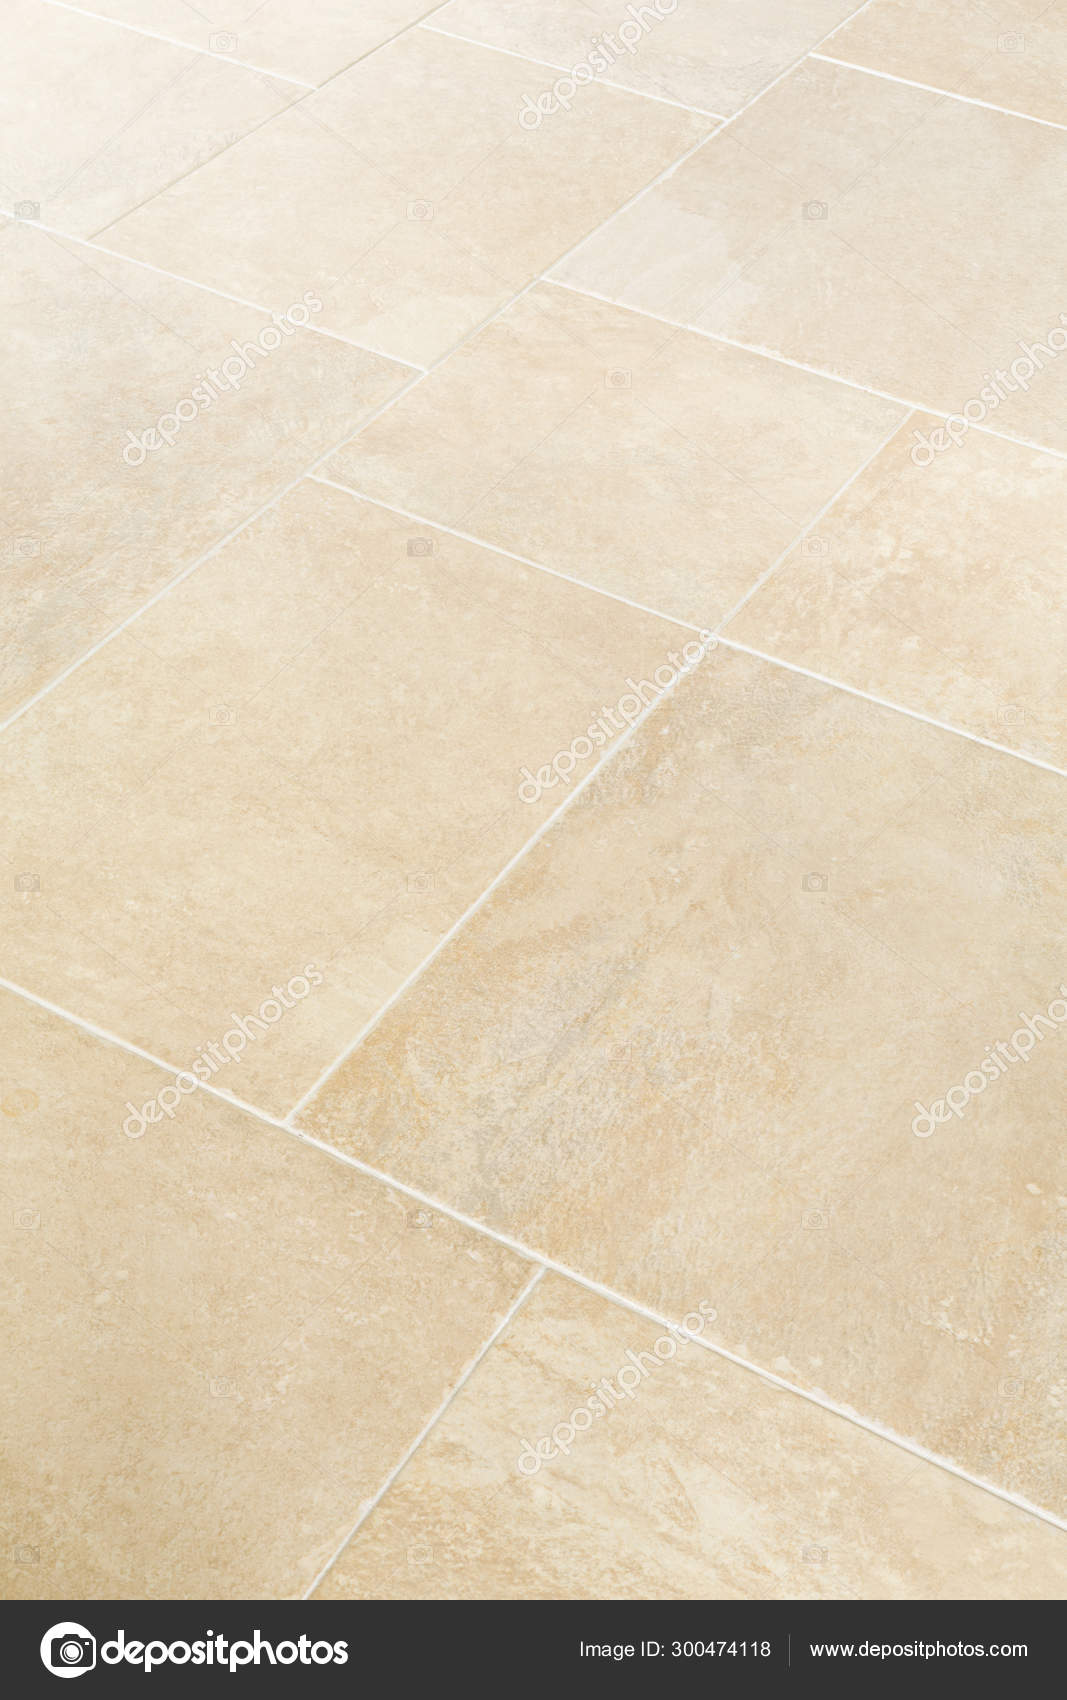 tile flooring texture stock photo image by c paulmaguire 300474118